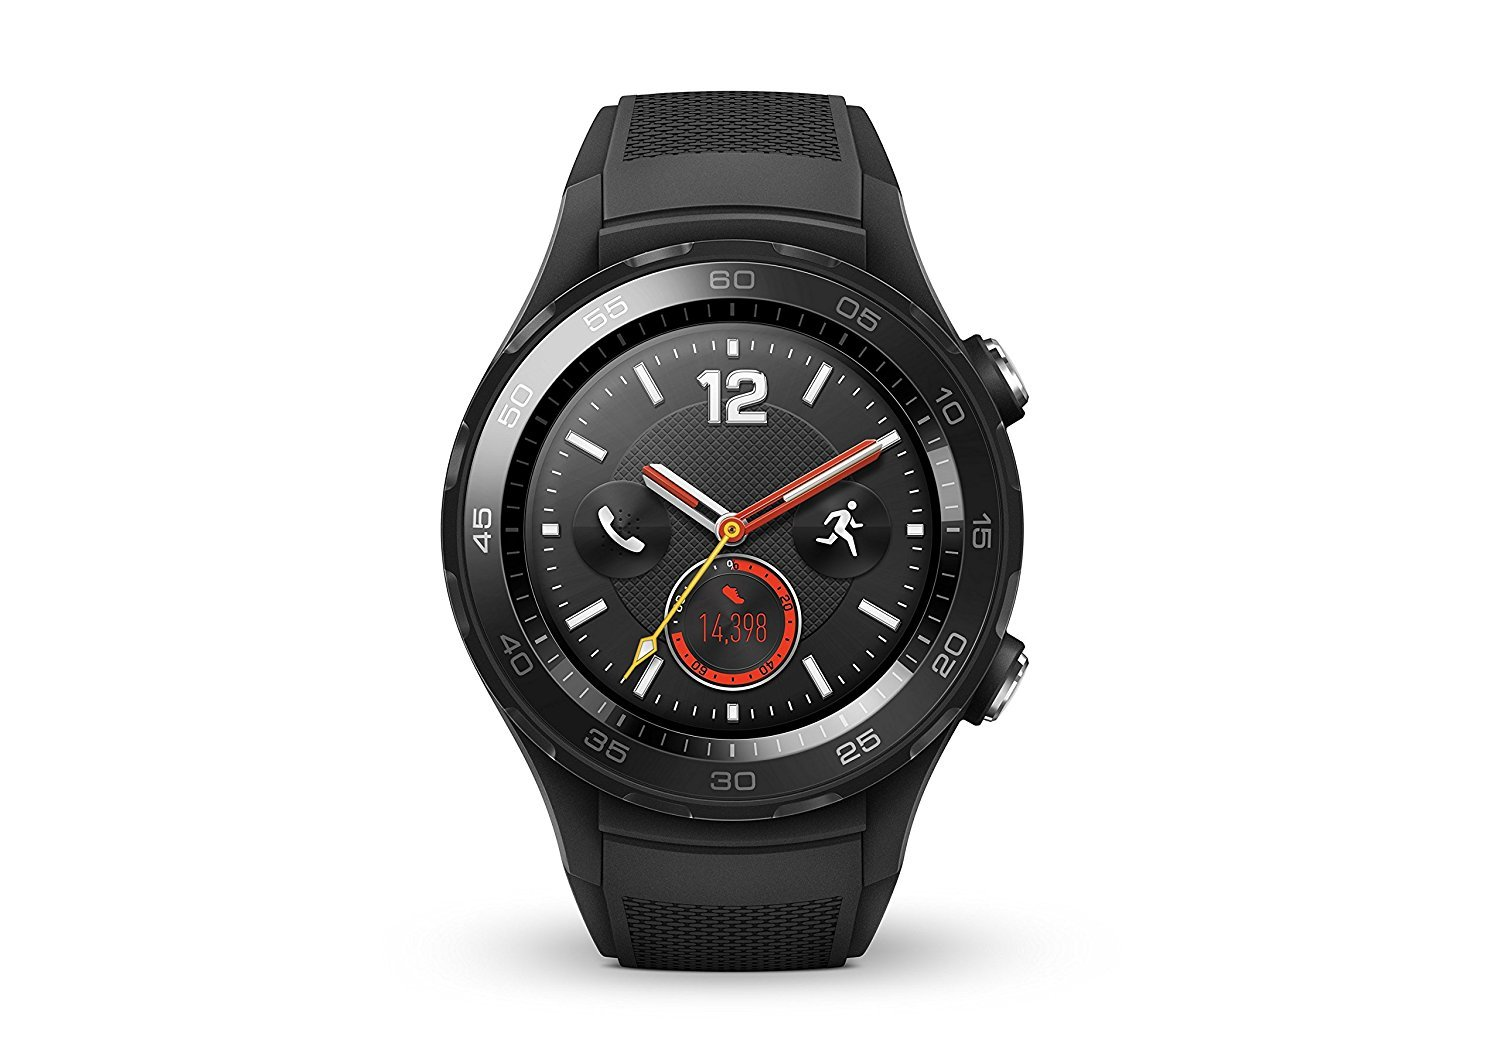 c809e3347 Huawei Watch 2 4G (Carbon Black)  Amazon.in  Computers   Accessories